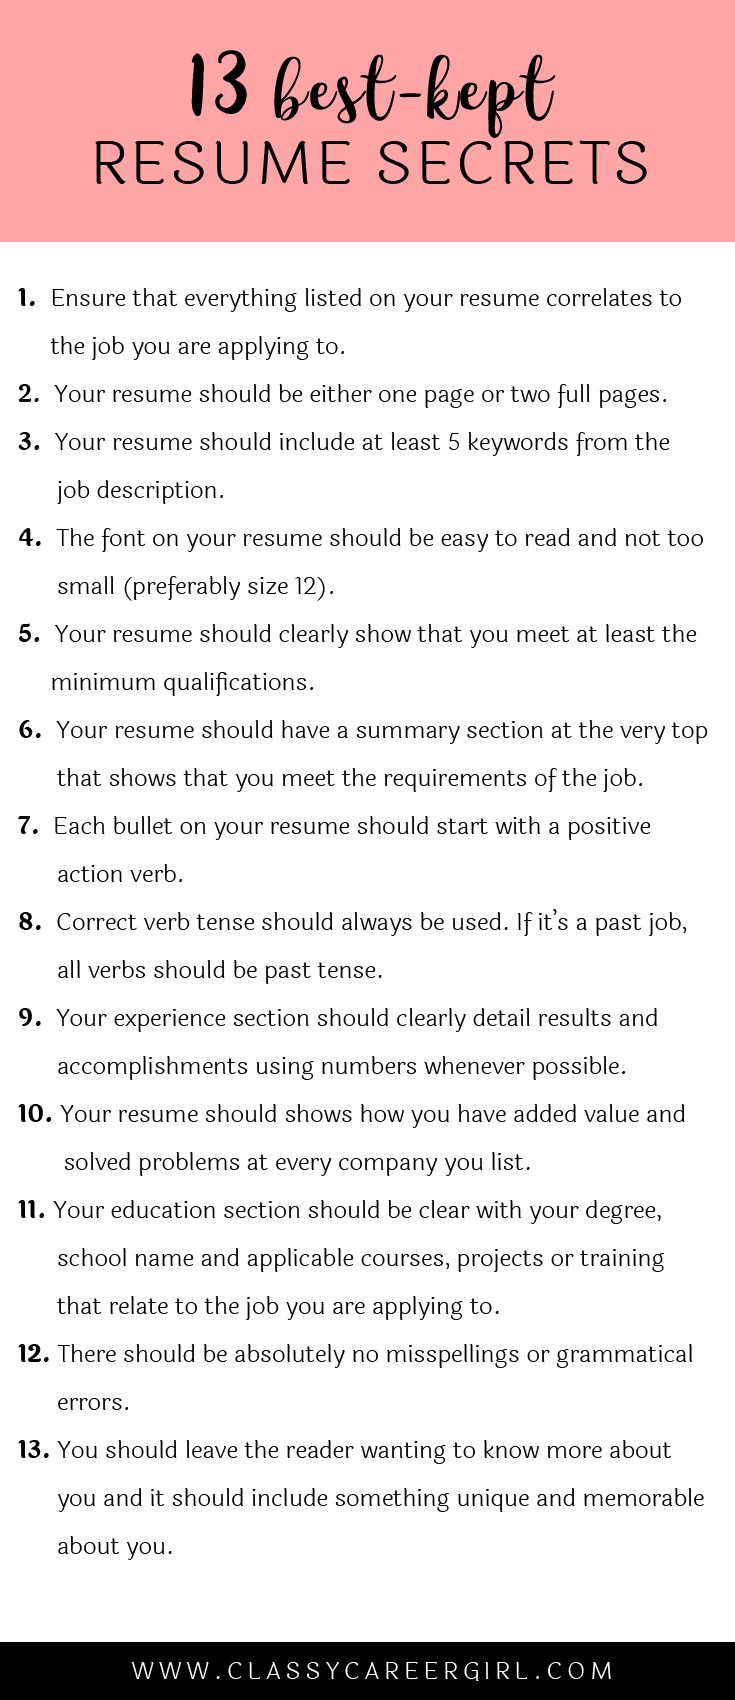 Opposenewapstandardsus  Pleasing  Ideas About Resume On Pinterest  Cv Format Resume Cv And  With Heavenly Some Hiring Managers Will Toss Your Resume Out If You Dont Know These  With Attractive Car Salesman Resume Also Cna Job Description For Resume In Addition Easy Resume Maker And Standard Resume As Well As Engineering Resume Examples Additionally Good Resume Skills From Pinterestcom With Opposenewapstandardsus  Heavenly  Ideas About Resume On Pinterest  Cv Format Resume Cv And  With Attractive Some Hiring Managers Will Toss Your Resume Out If You Dont Know These  And Pleasing Car Salesman Resume Also Cna Job Description For Resume In Addition Easy Resume Maker From Pinterestcom